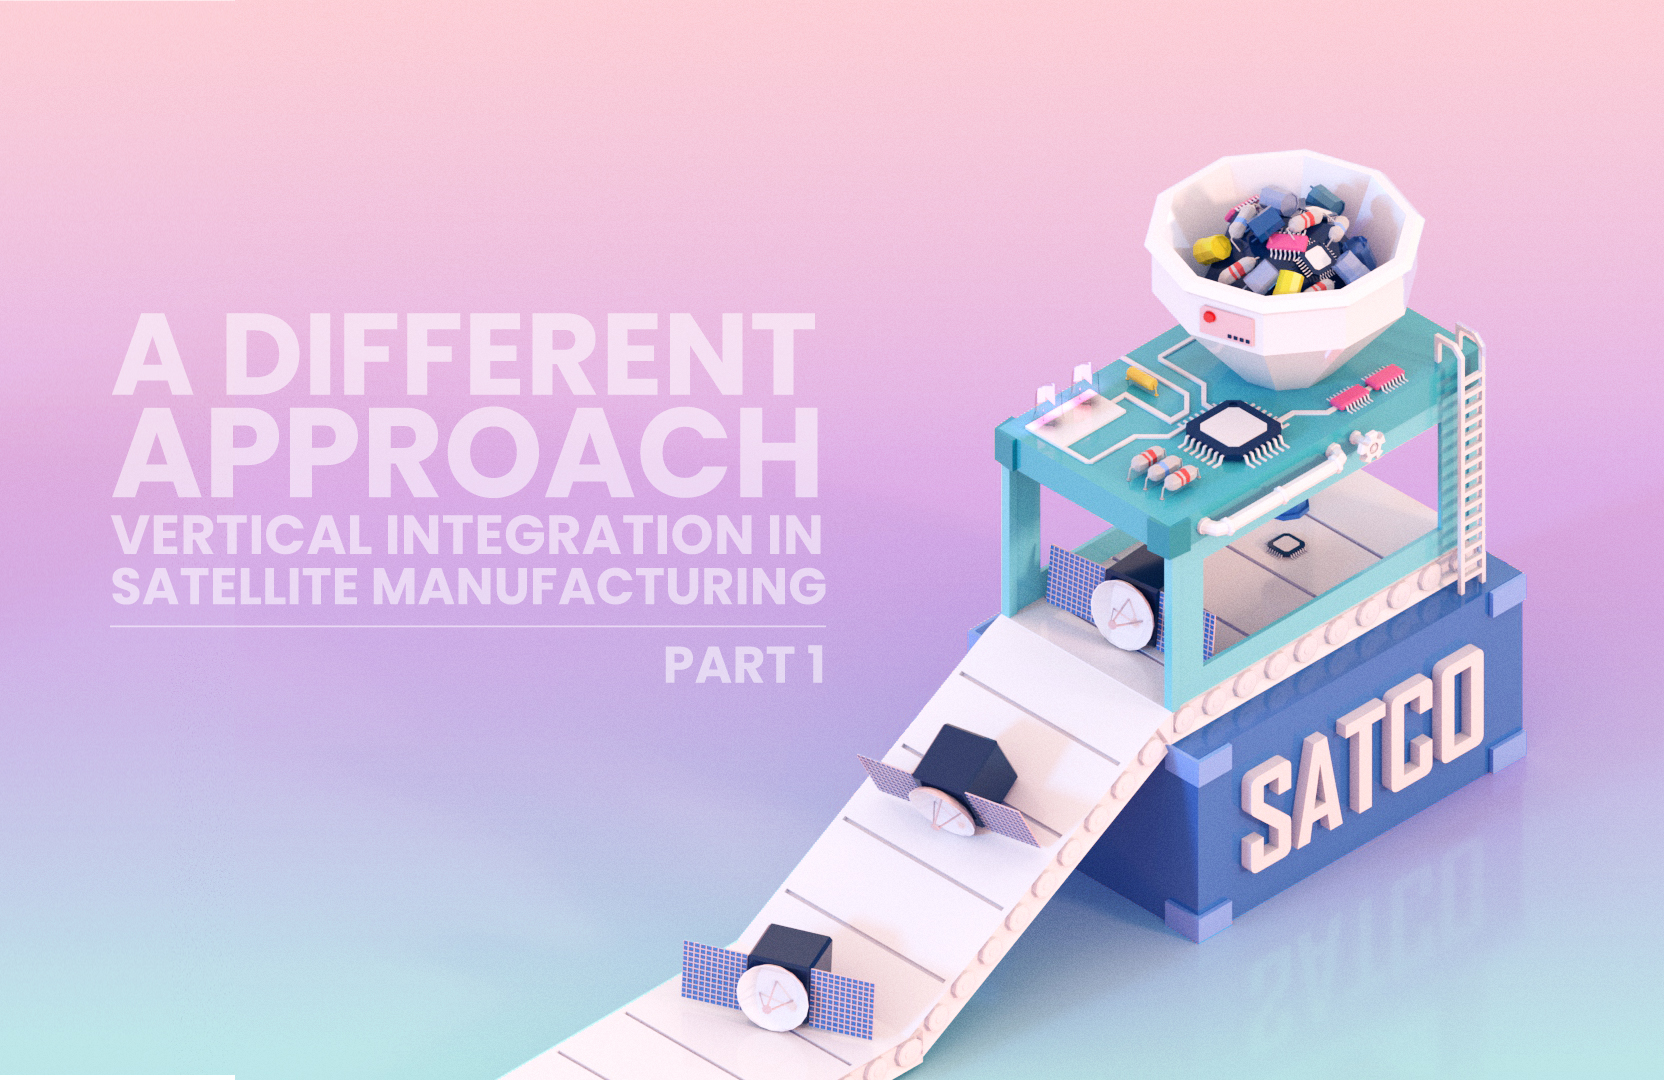 A Different Approach: Vertical Integration in Satellite